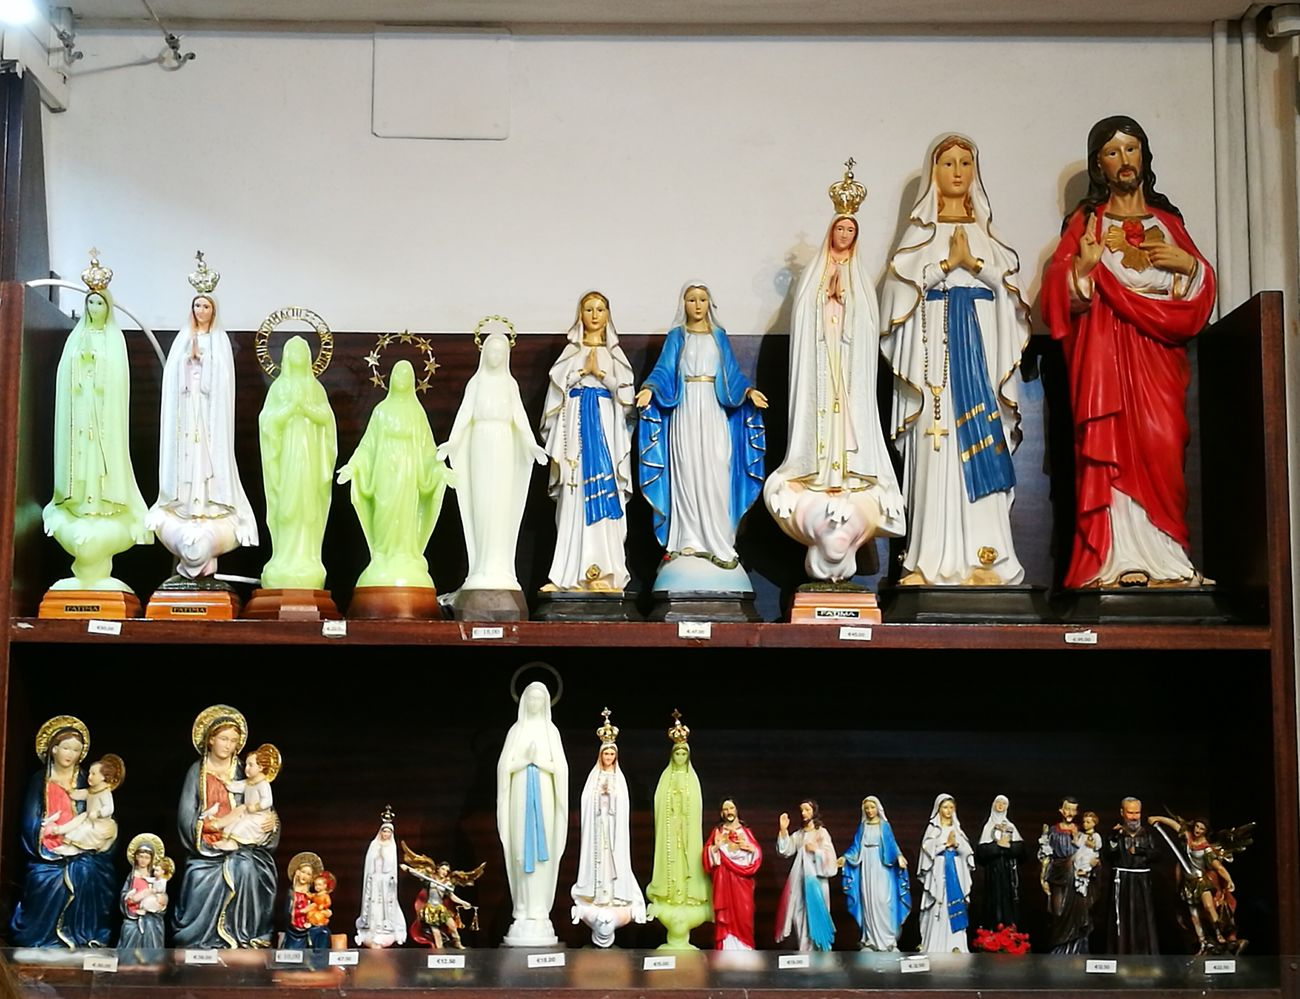 Large Group Of Objects Store Statue Religion And Tradition Religious Images No People Shelf